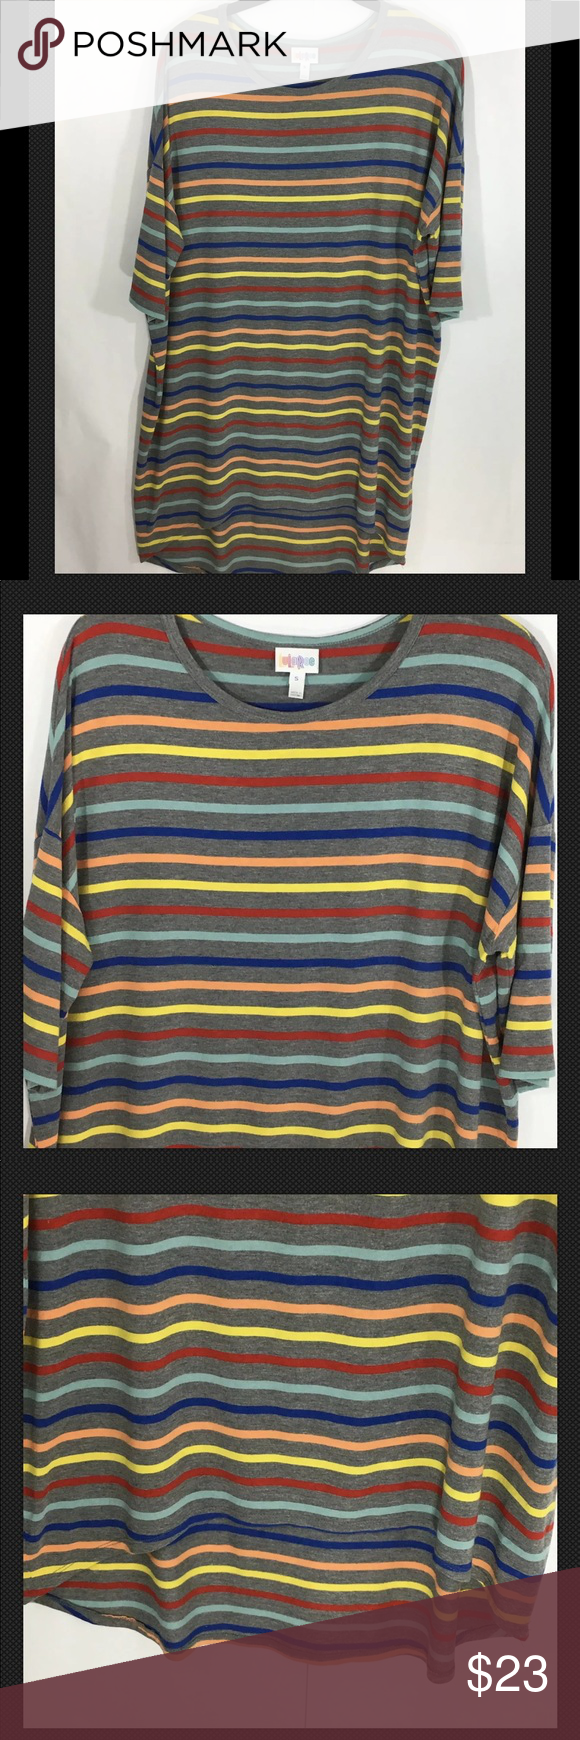 LuLaRoe Irma Multicolored Striped High/Low Dress Multicolored stripe high/low dress with short sleeves. Measurements are approximate and taken laying flat from seam to seam  Width: 25' under arm seam to seam  Length: 31' front  Length: 35' back #0137 LuLaRoe Dresses High Low